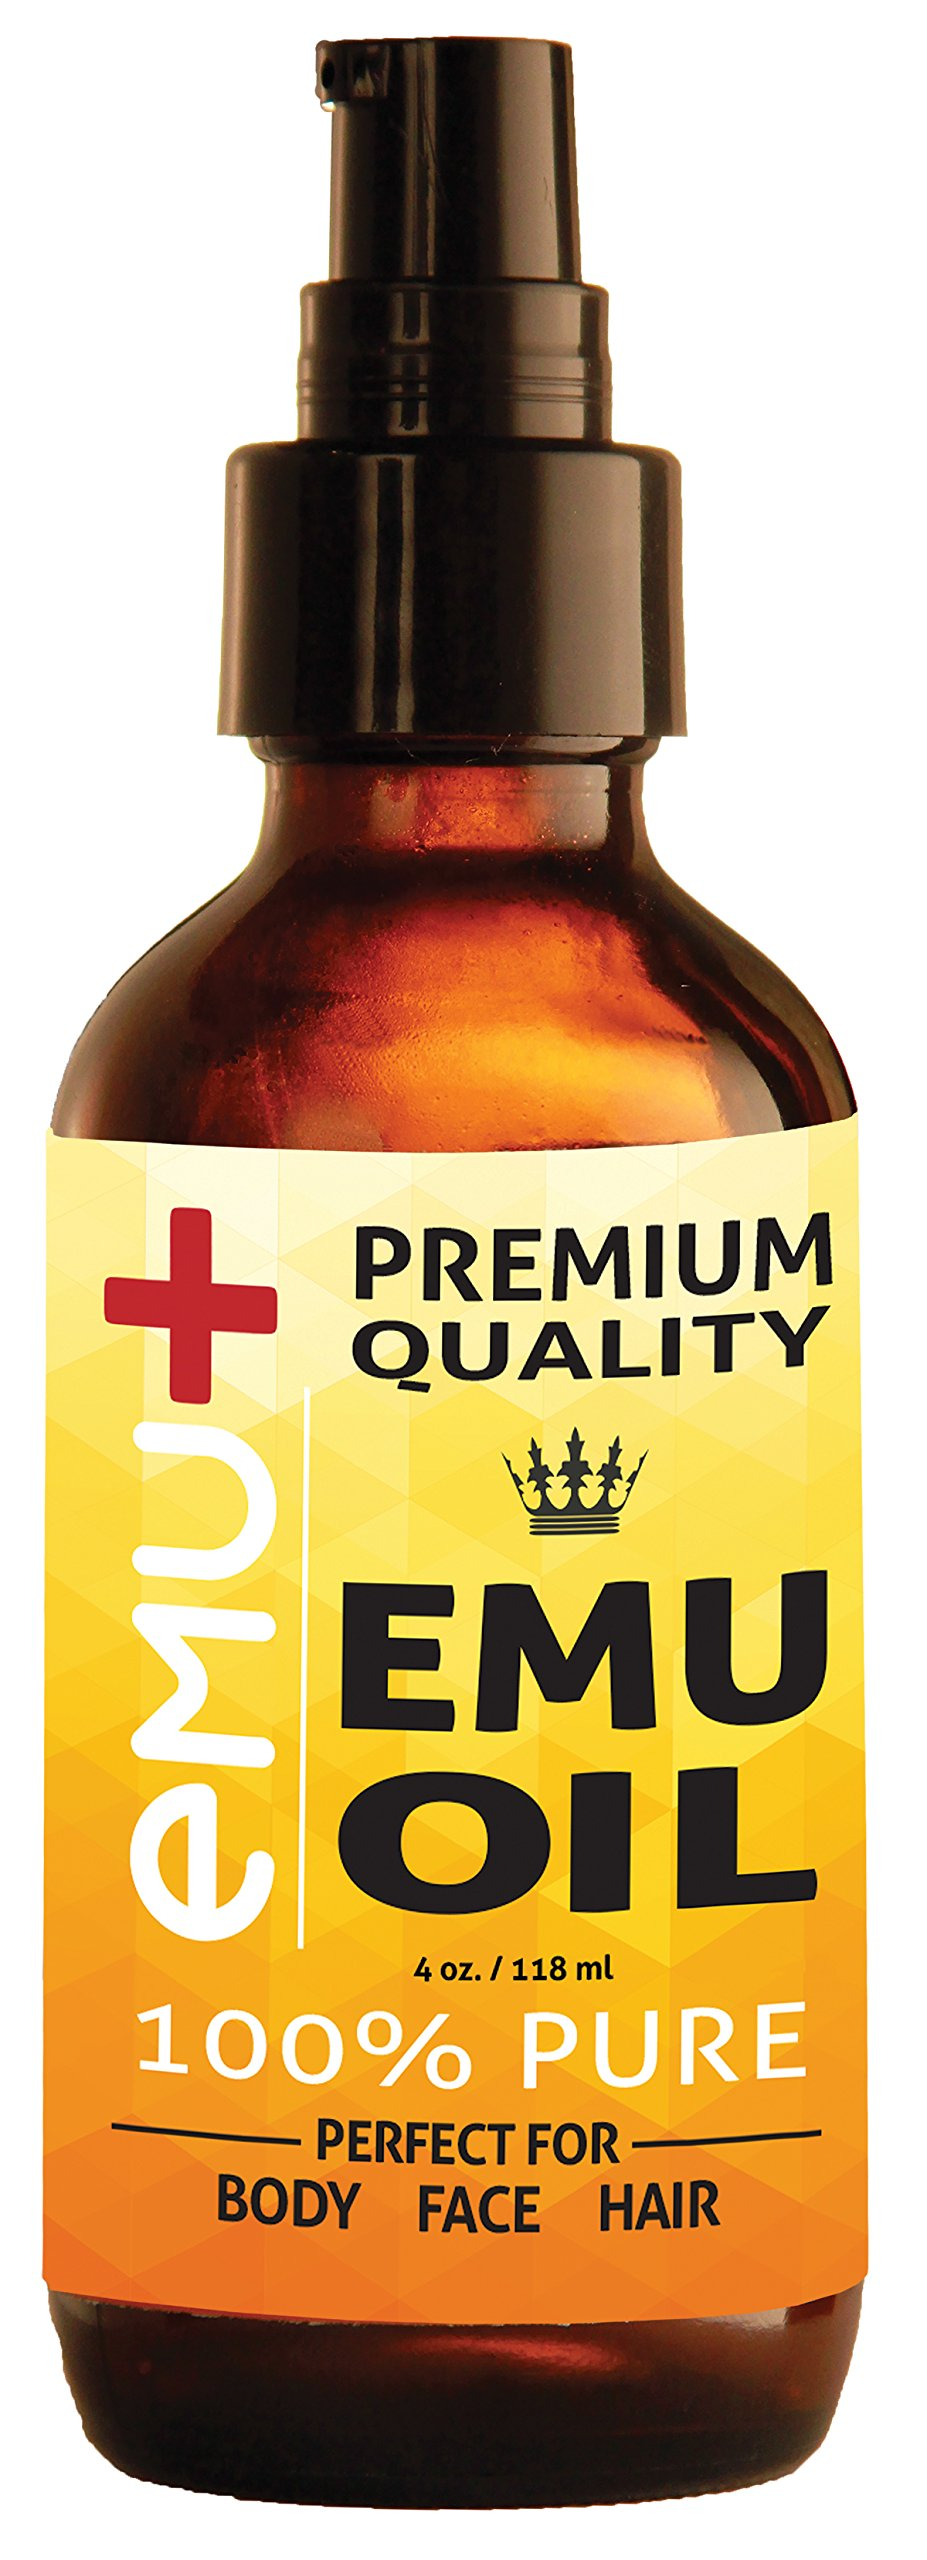 Premium Quality Emu Oil for Hair Growth, Grade ''A'' Australian Emu Oil for Face, for Body, 100% Pure for Scars, for Acne and Even for Pain! - Amazing Natural Remedy - Nourishes Your Thirsty Skin. 4 Oz. by Emu